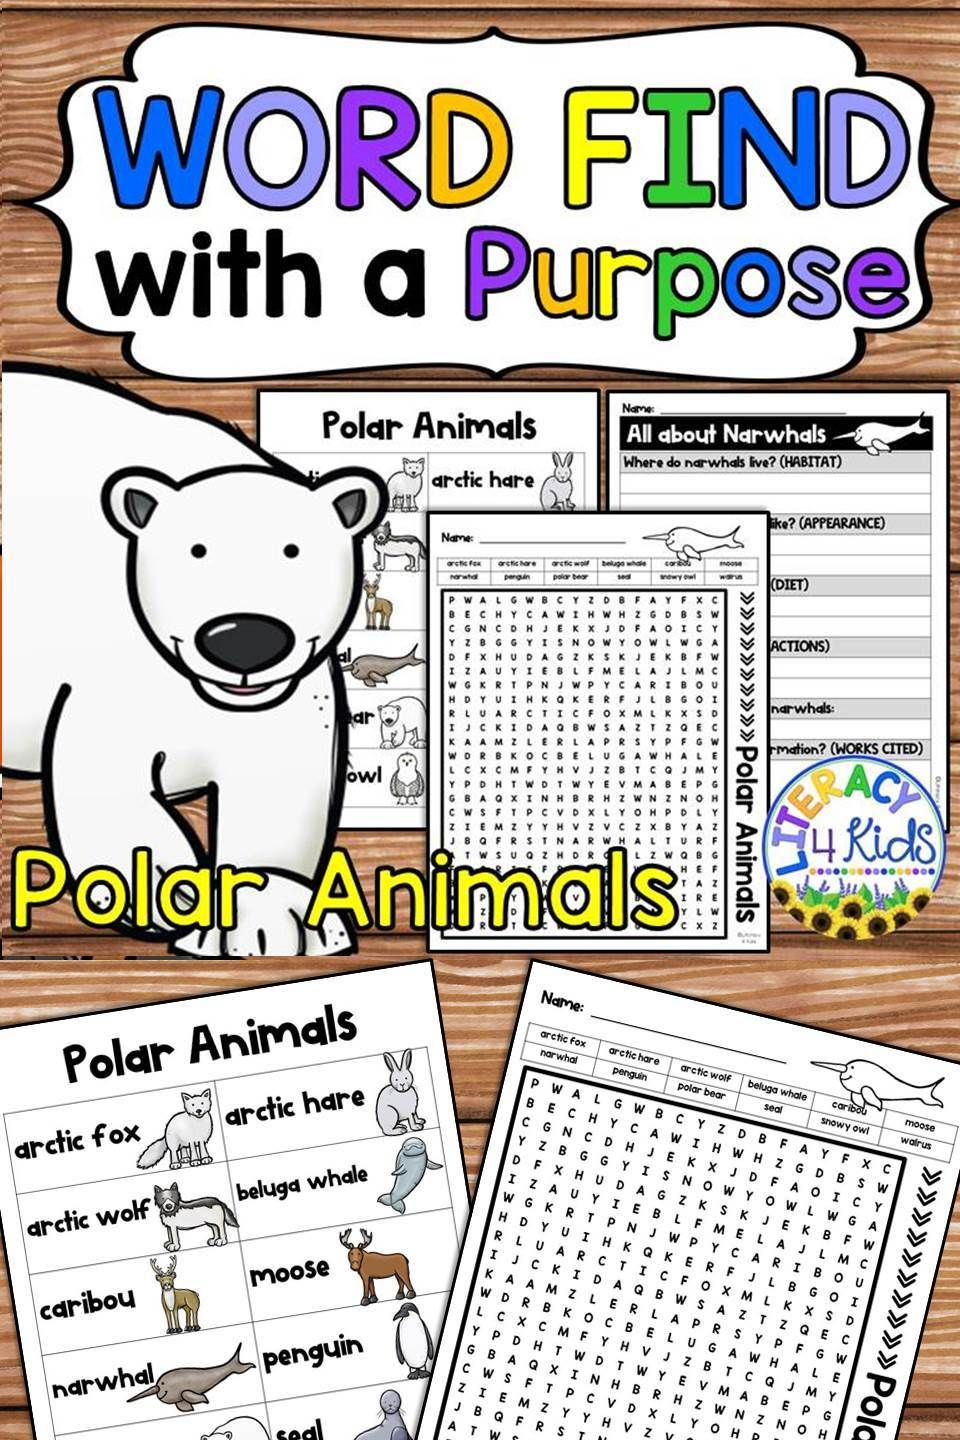 Word Find with a Purpose Polar Animals (With images